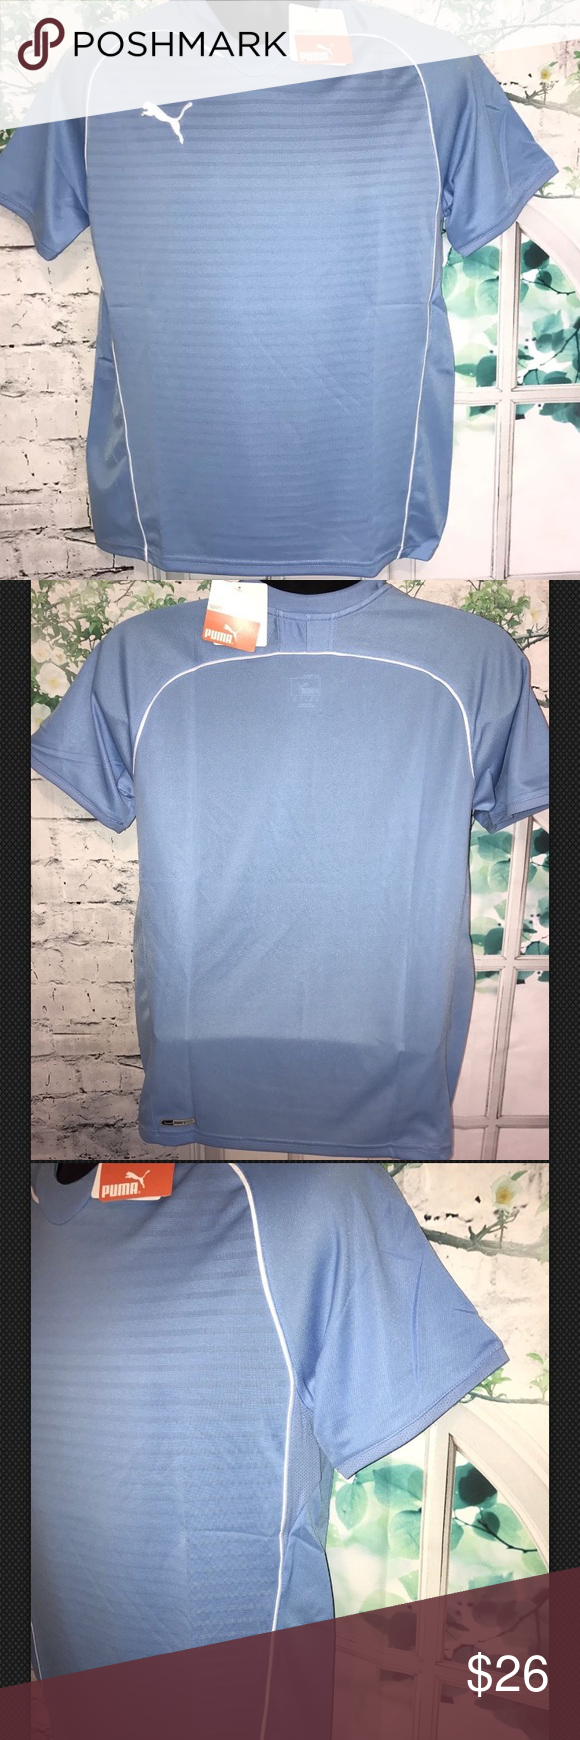 Puma Boy's Manchester Training Tee Color Blue- YXL Puma Boy's Manchester Training Tee     Color Blue-White  Size YXL   new with tags.  store display models.    shoulder to shoulder 19' sleeve length 11' full length 26'    100% polyester            100% Authentic  Any questions please feel free to message me,customer satisfaction is my priority. Positive Feedback rating will be appreciated. Thank you =) Puma Shirts Tees - Short Sleeve